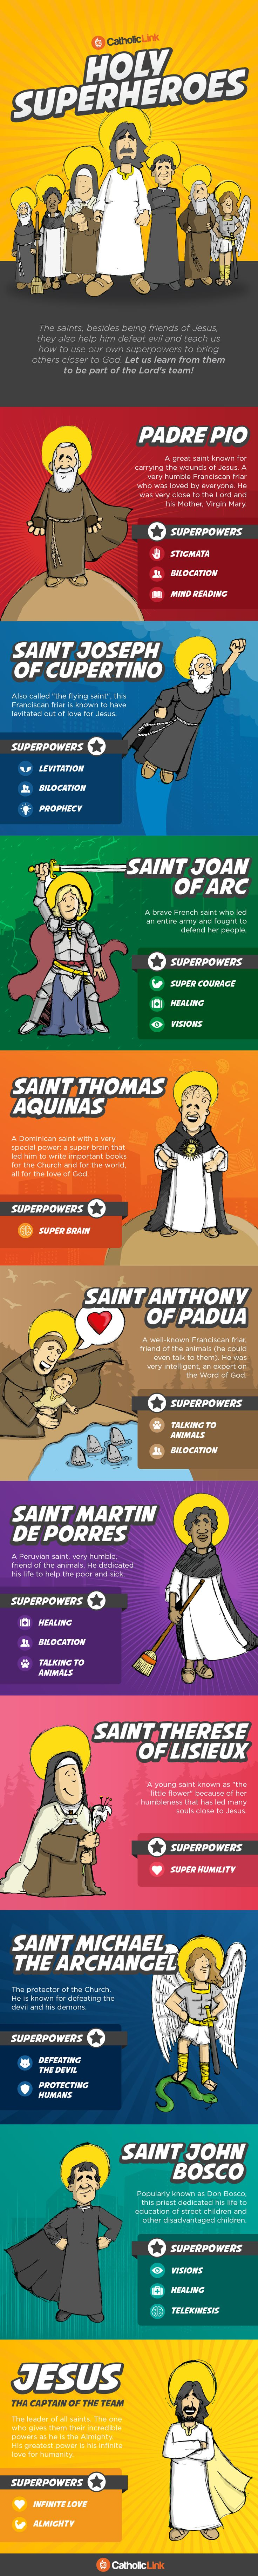 9 Saints that Were Superheroes in Their Free Time (And Their Great Captain!)